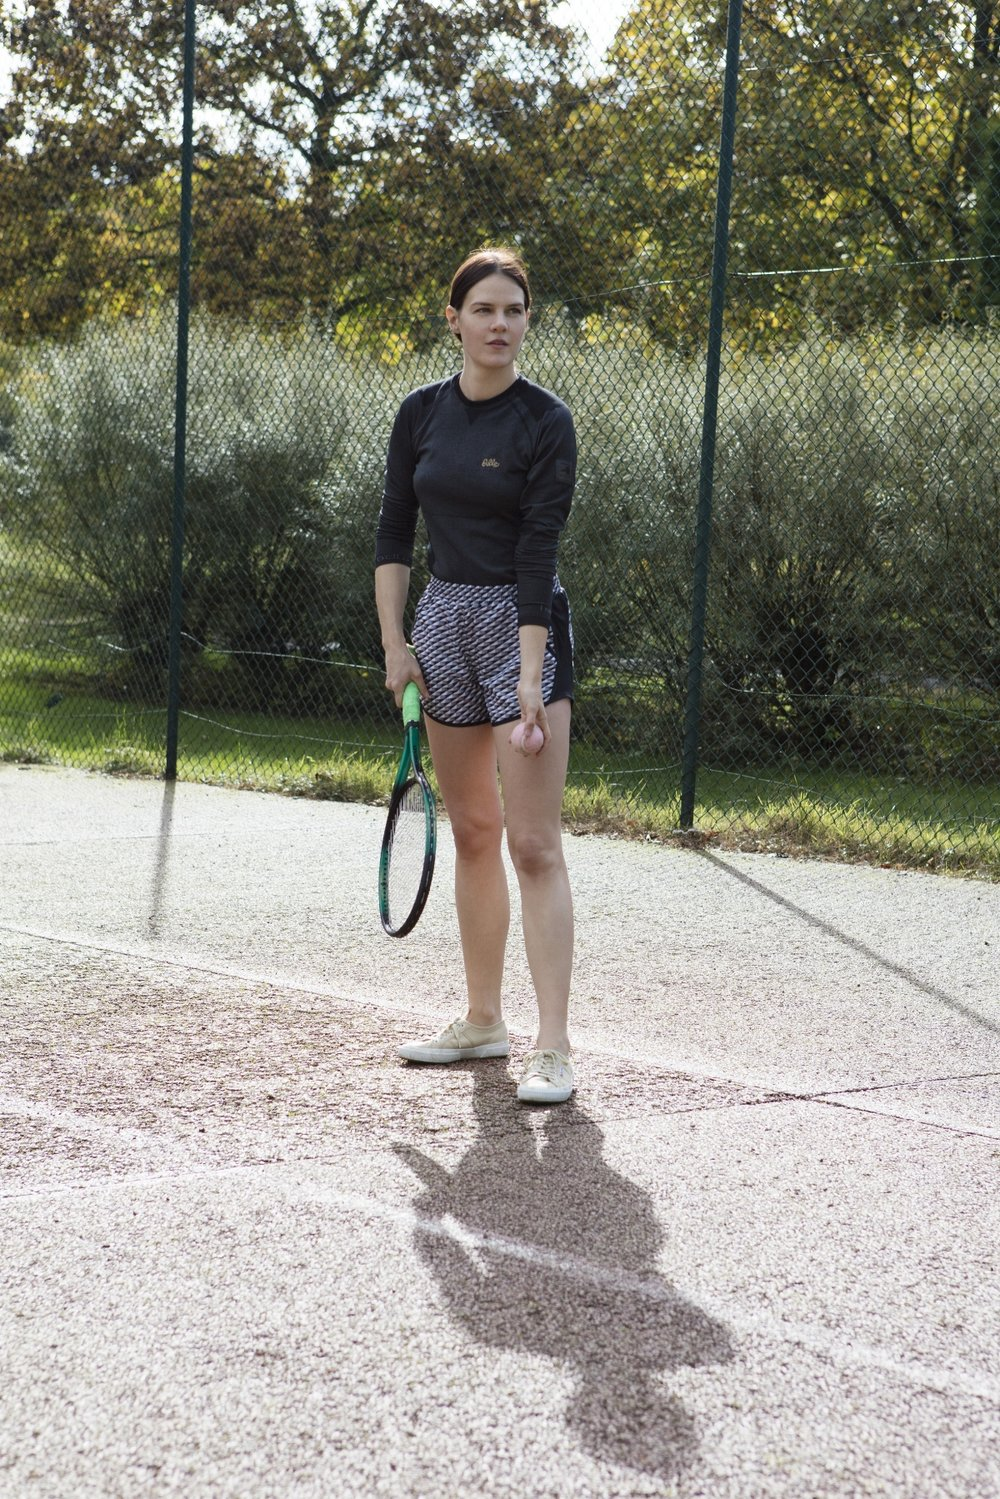 Top: Odlo. Shorts: Under Armour. Chaussures: Superga. Photos:Corinne Stoll